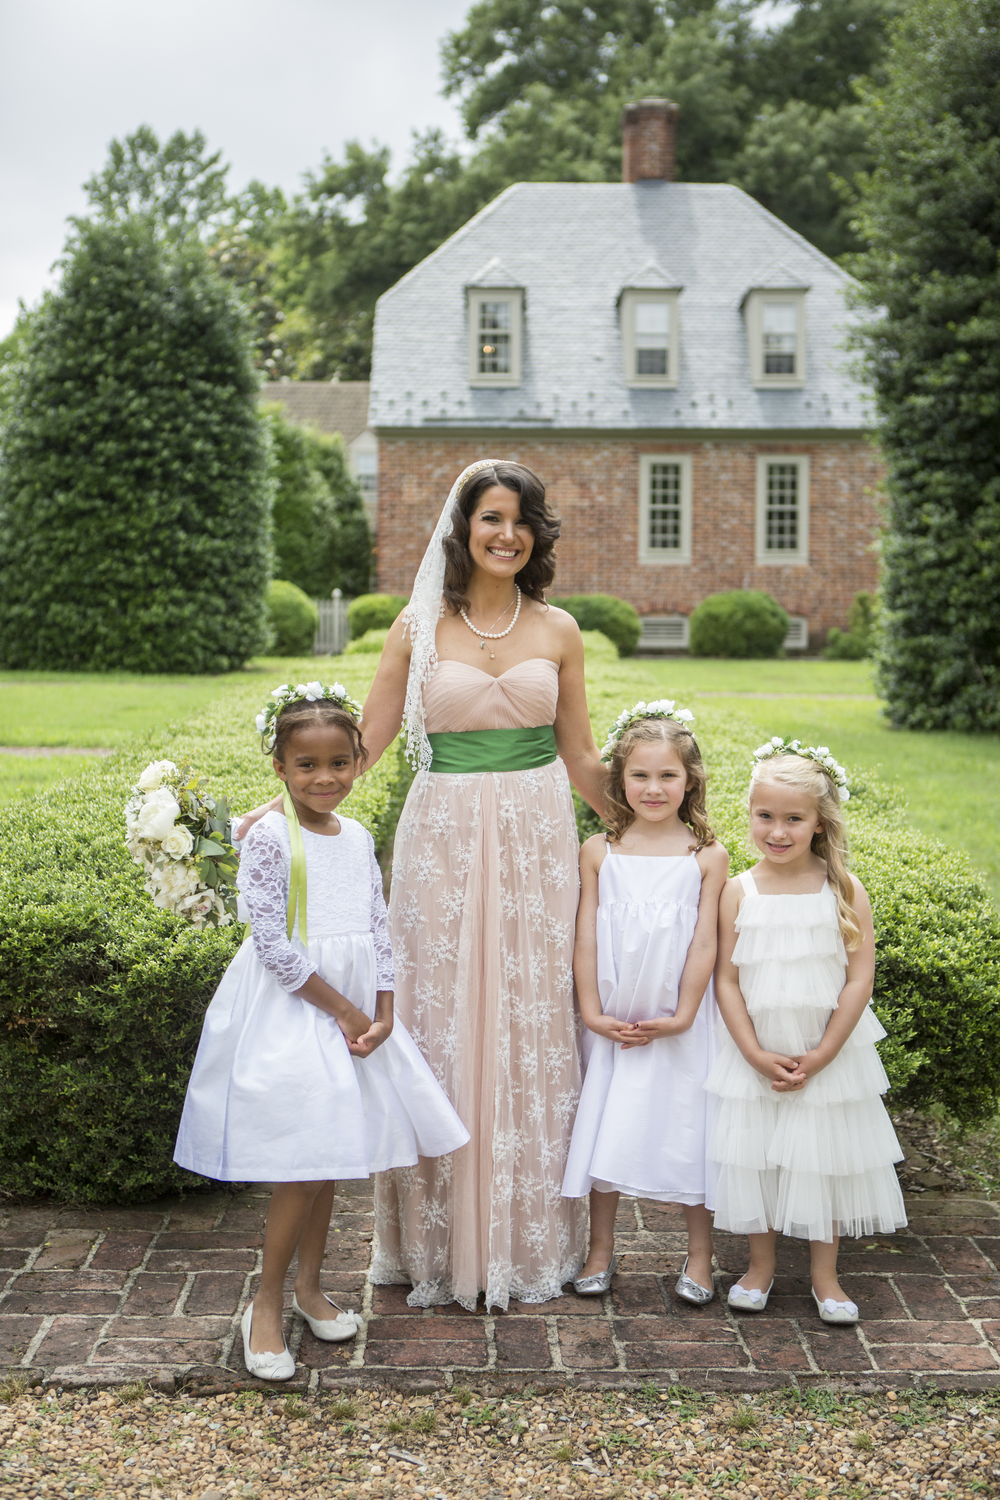 Flower girls pose with the bride in front of the Manor